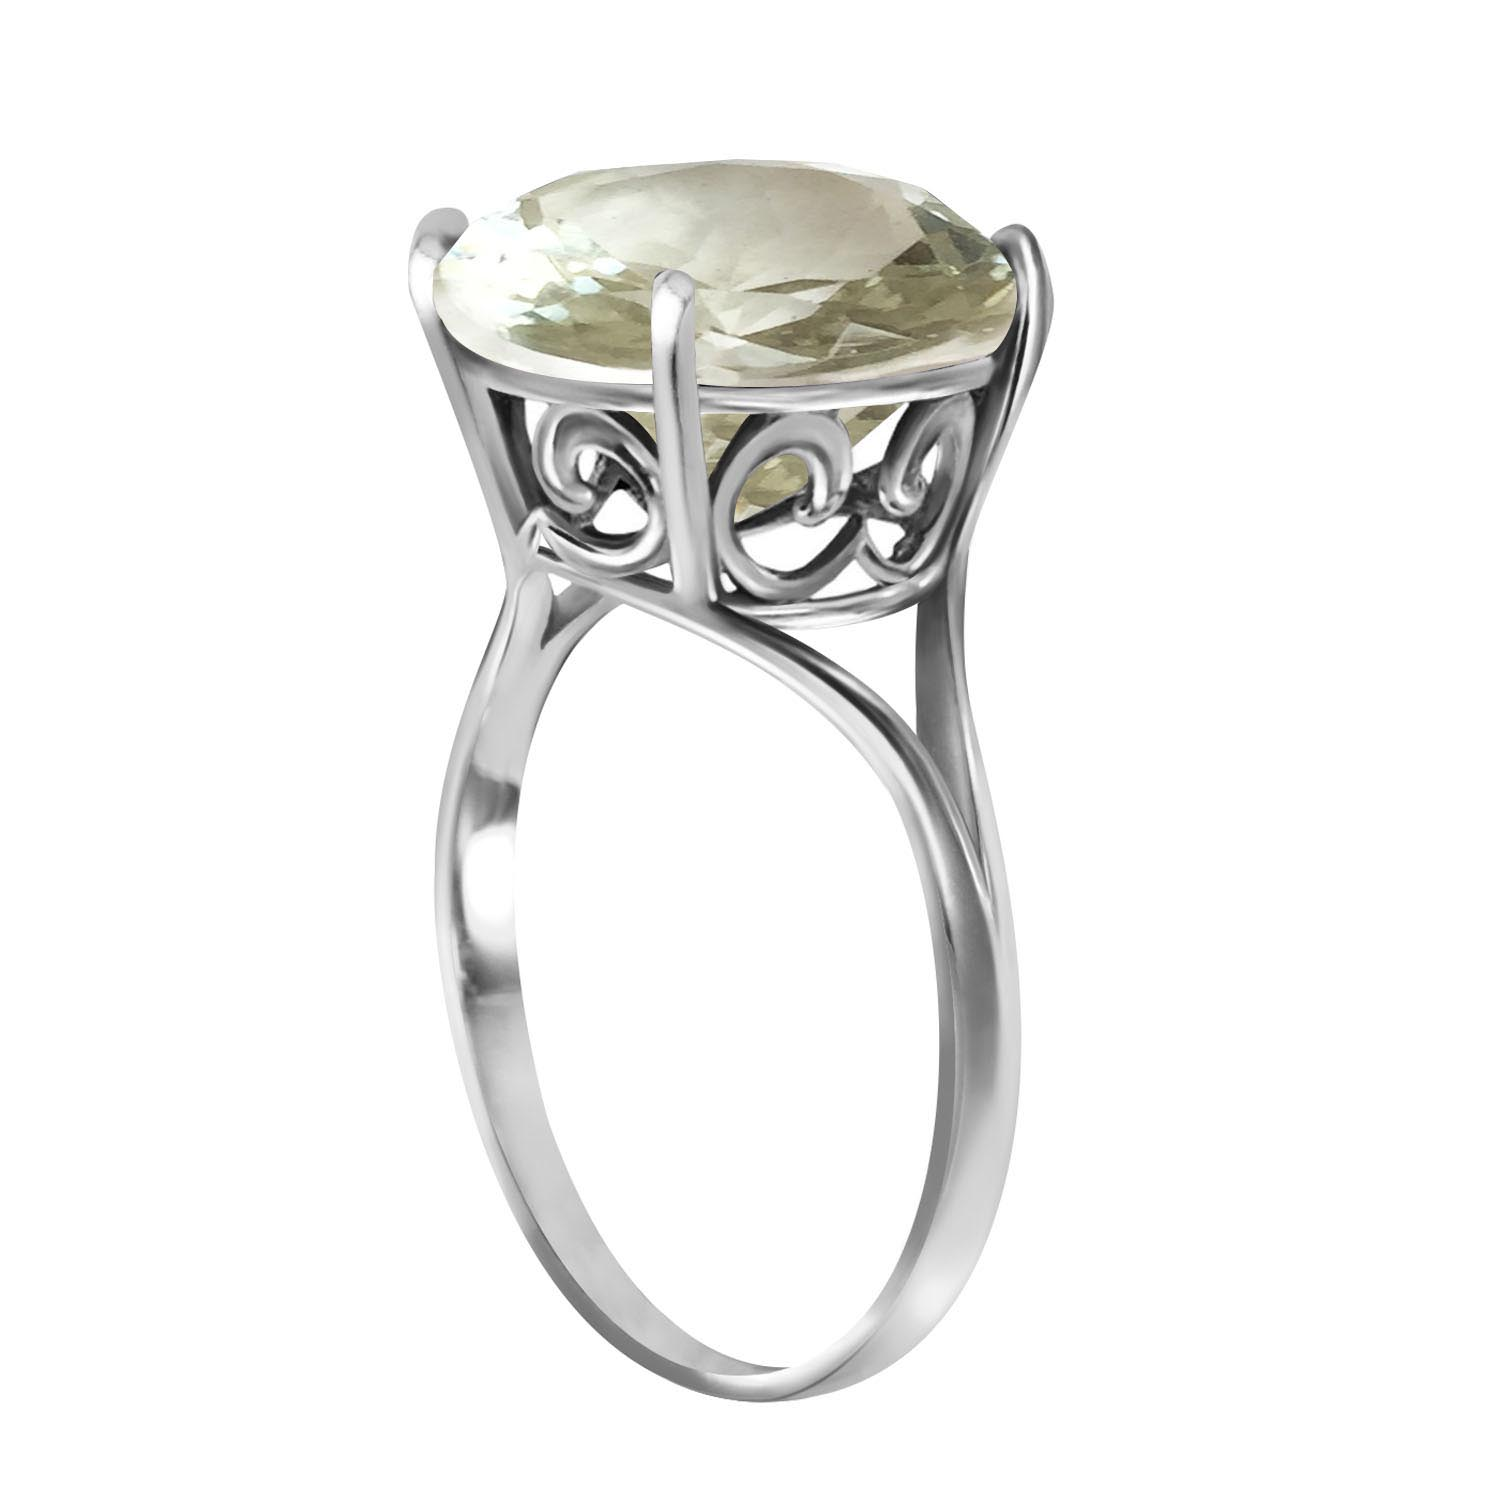 Round Brilliant Cut Green Amethyst Ring 5.5ct in 9ct White Gold